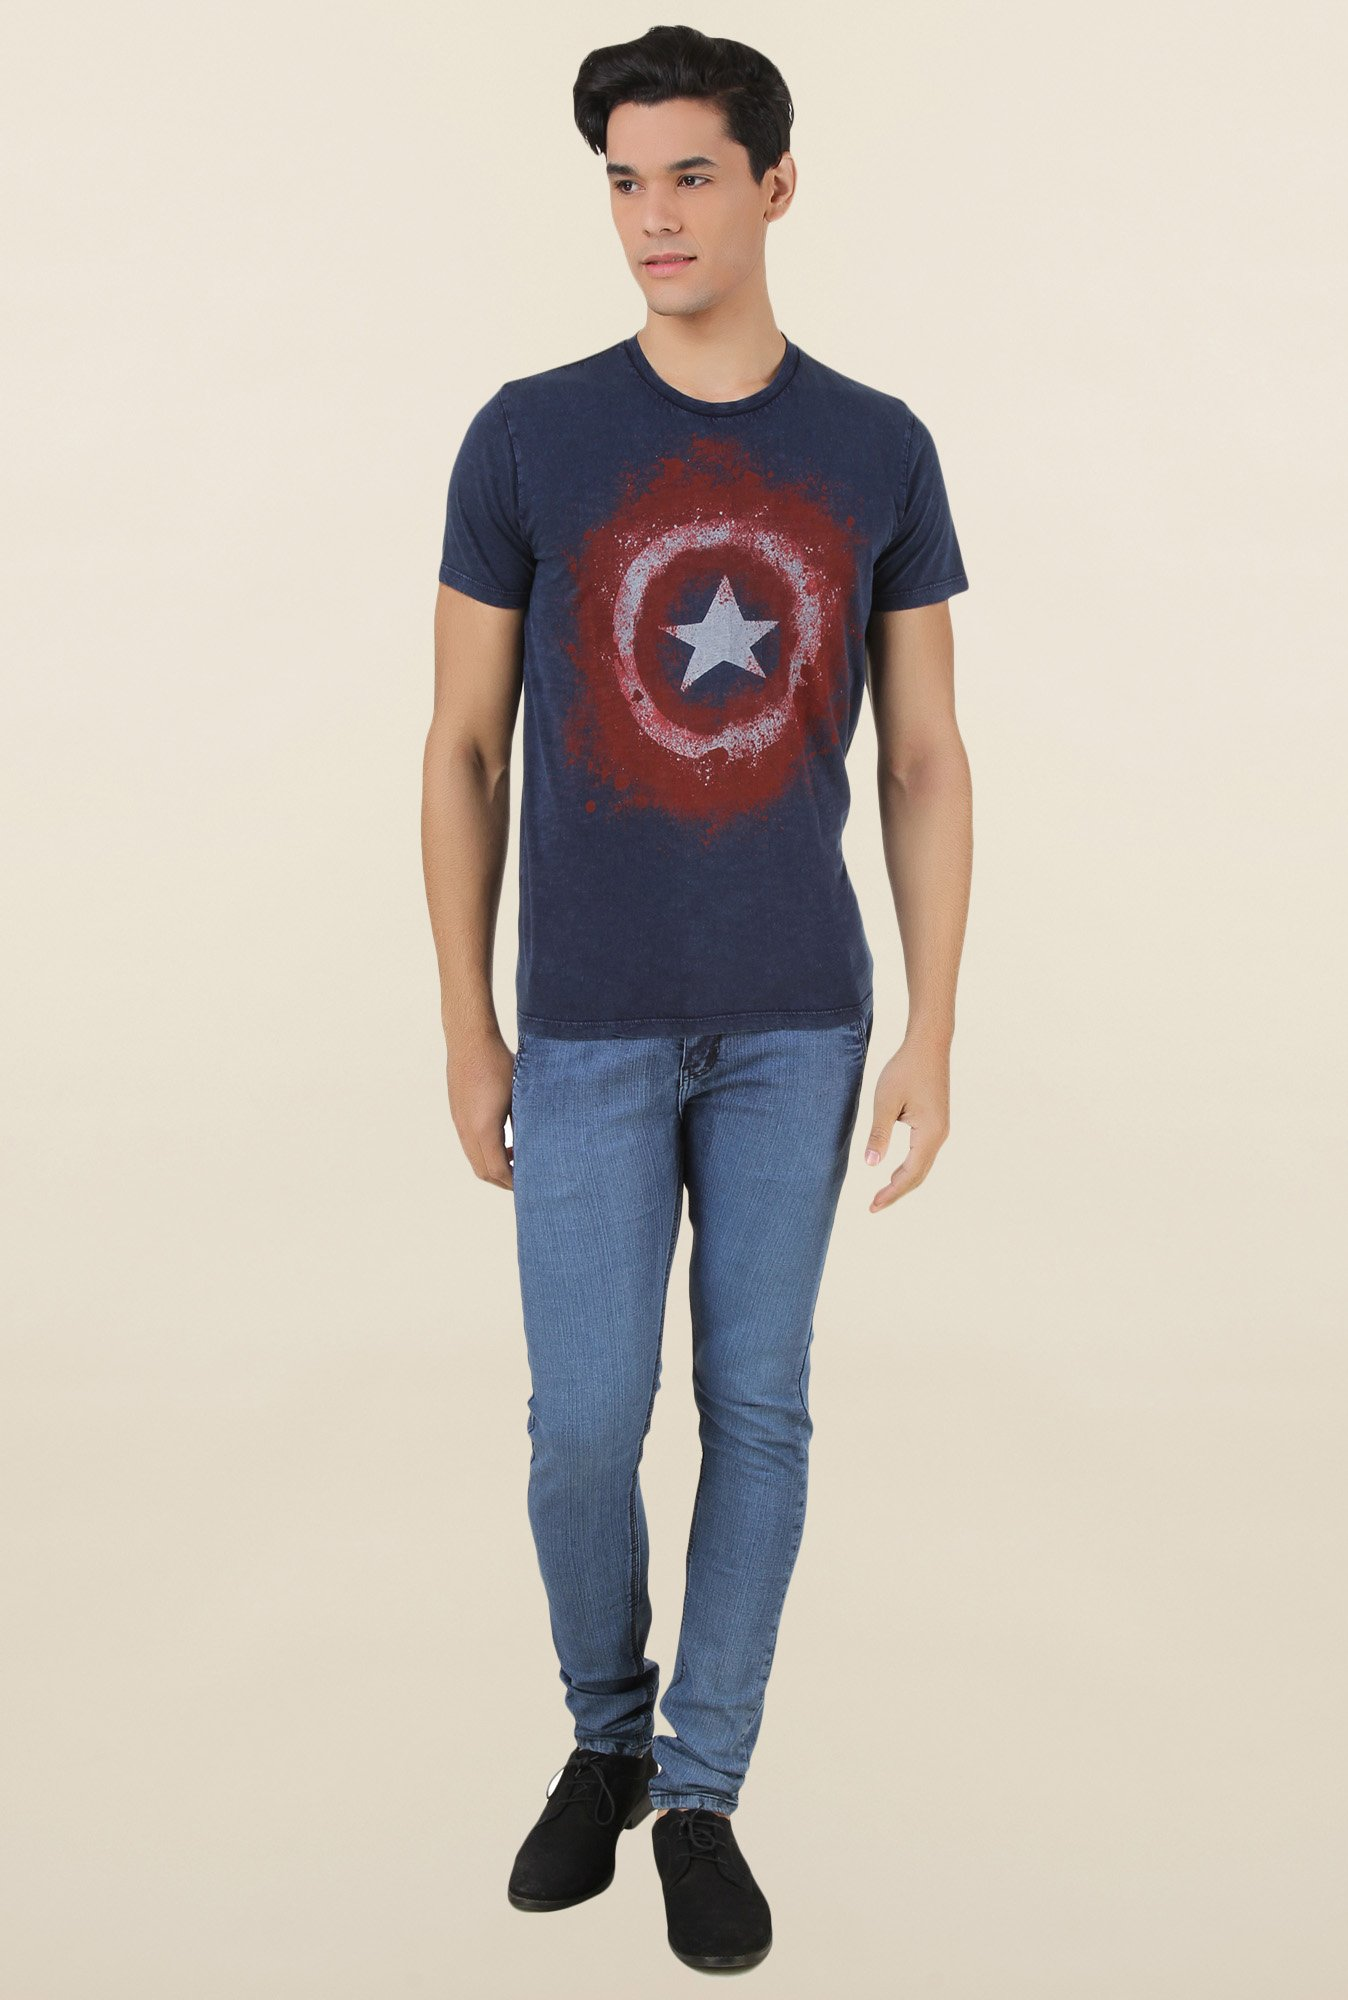 Captain America Navy Printed T Shirt